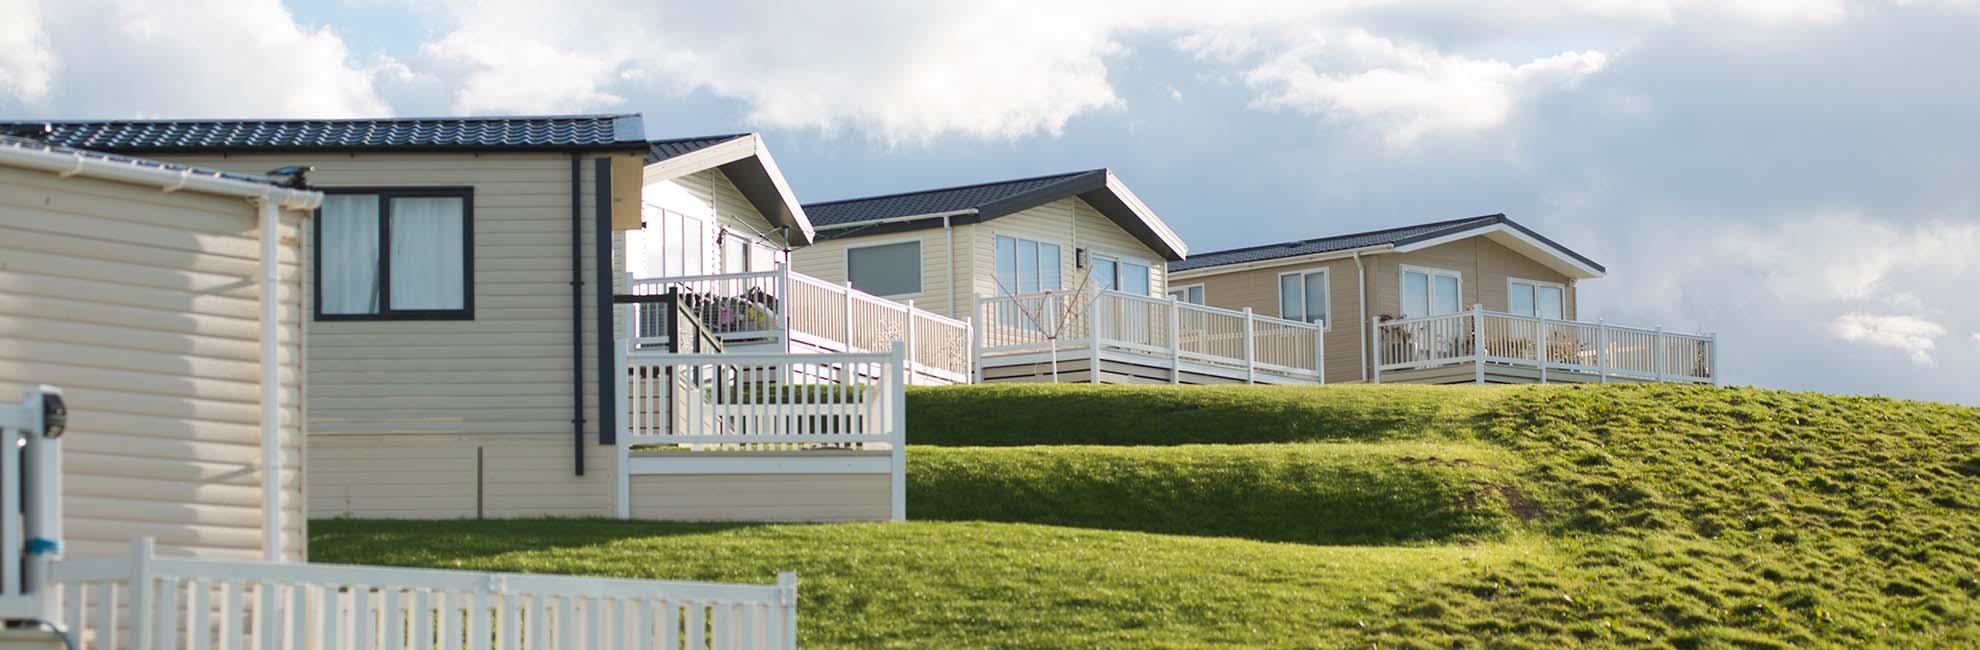 Lodges with verandas at Eyemouth Holiday Park